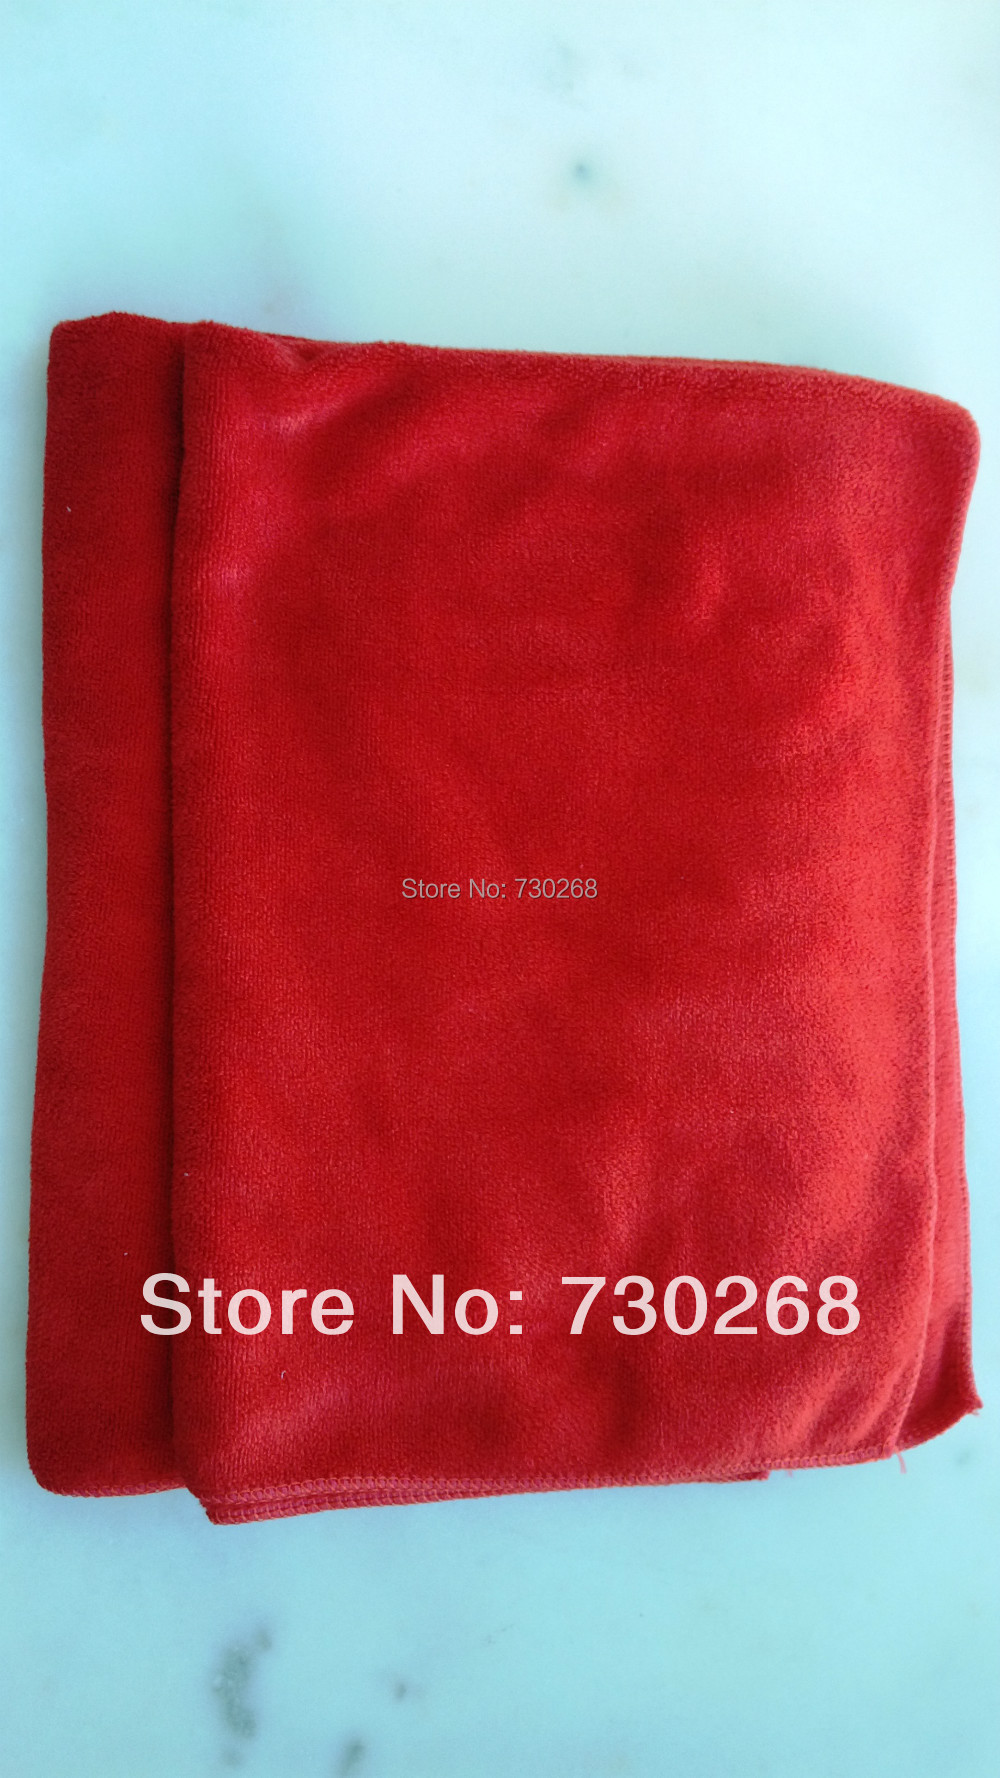 Free Shipping Wholesale Microfiber Towel & Microfiber Cleaning Cloth 33x66cm 300gsm Magic Towel Quick Dry Hand Towel(China (Mainland))